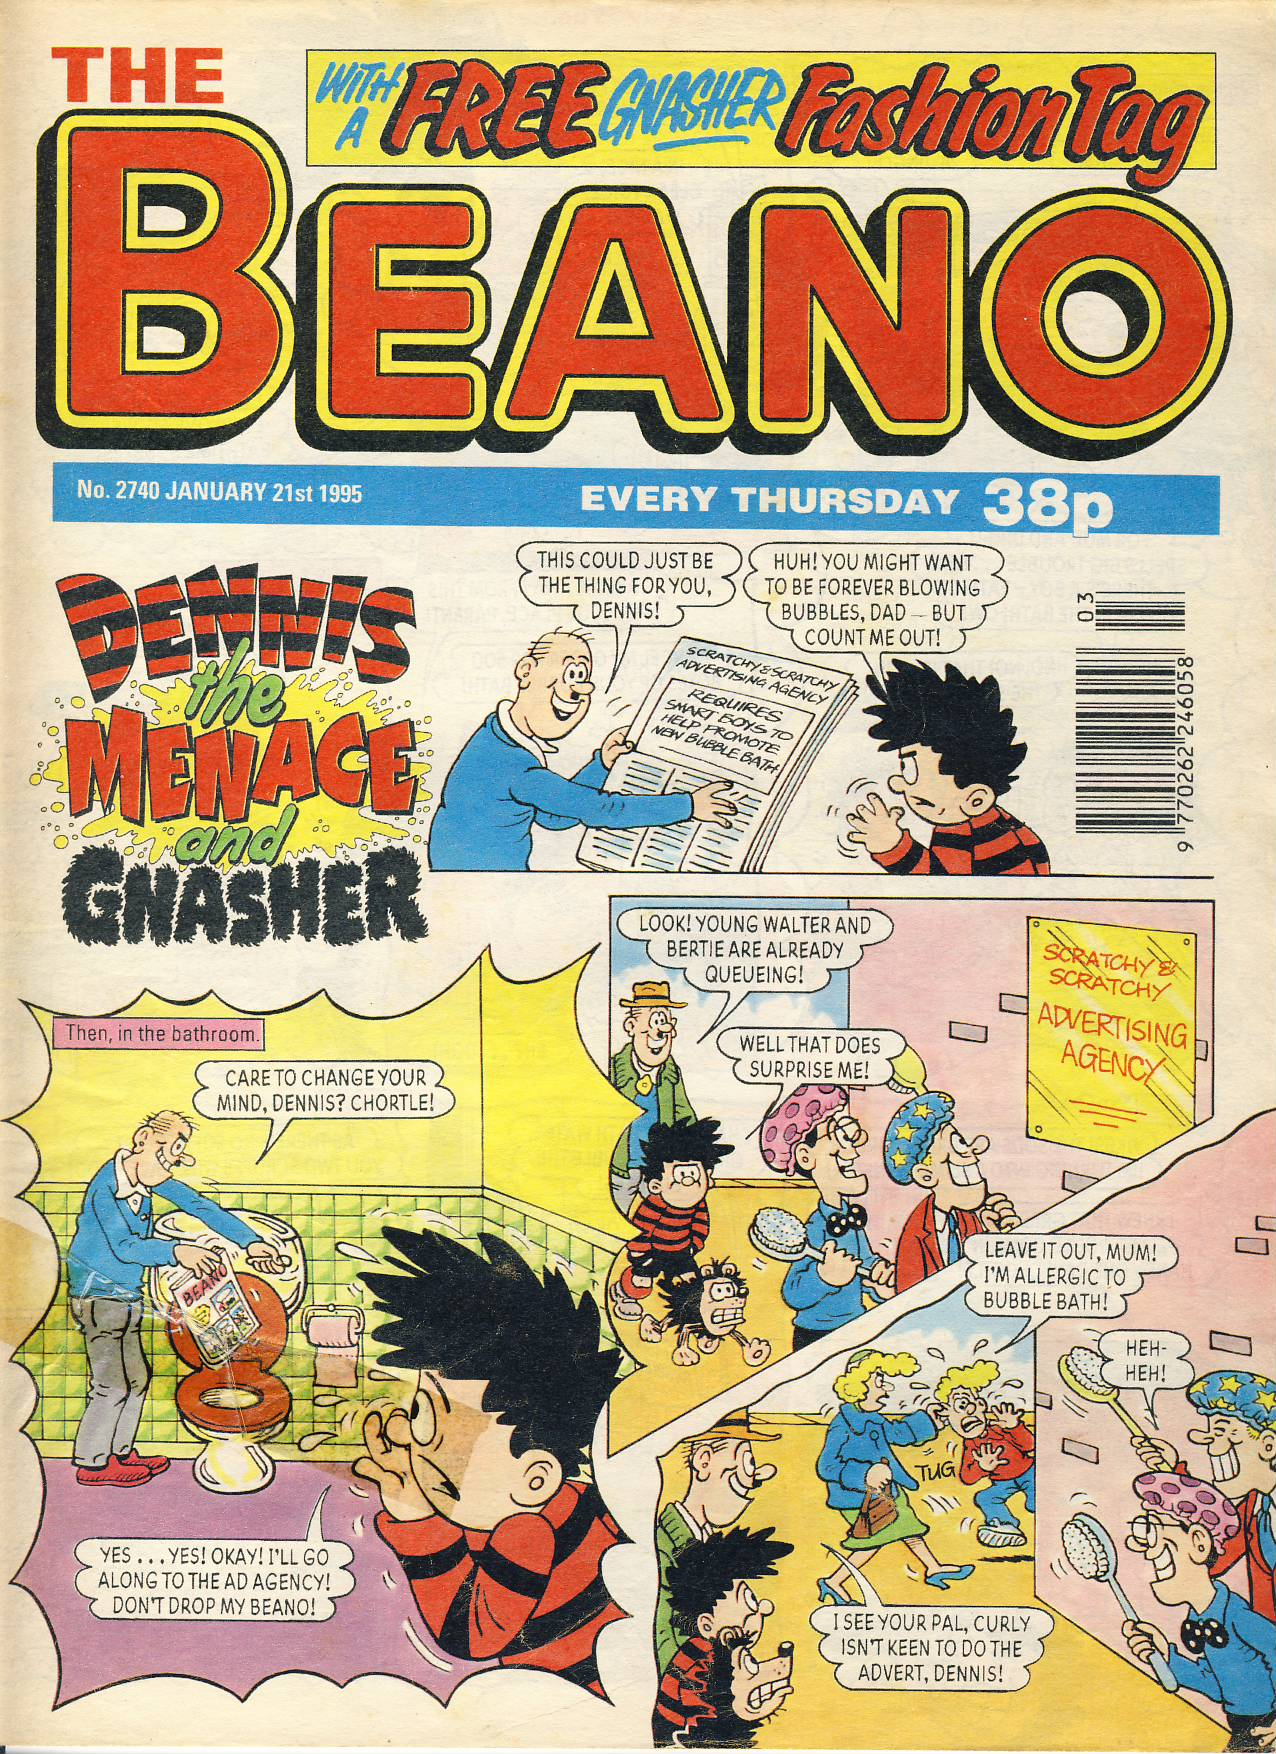 1995 January 21st BEANO vintage comic Good Gift Christmas Present Birthday Anniversary ref221 a pre-owned item in very good read condition.